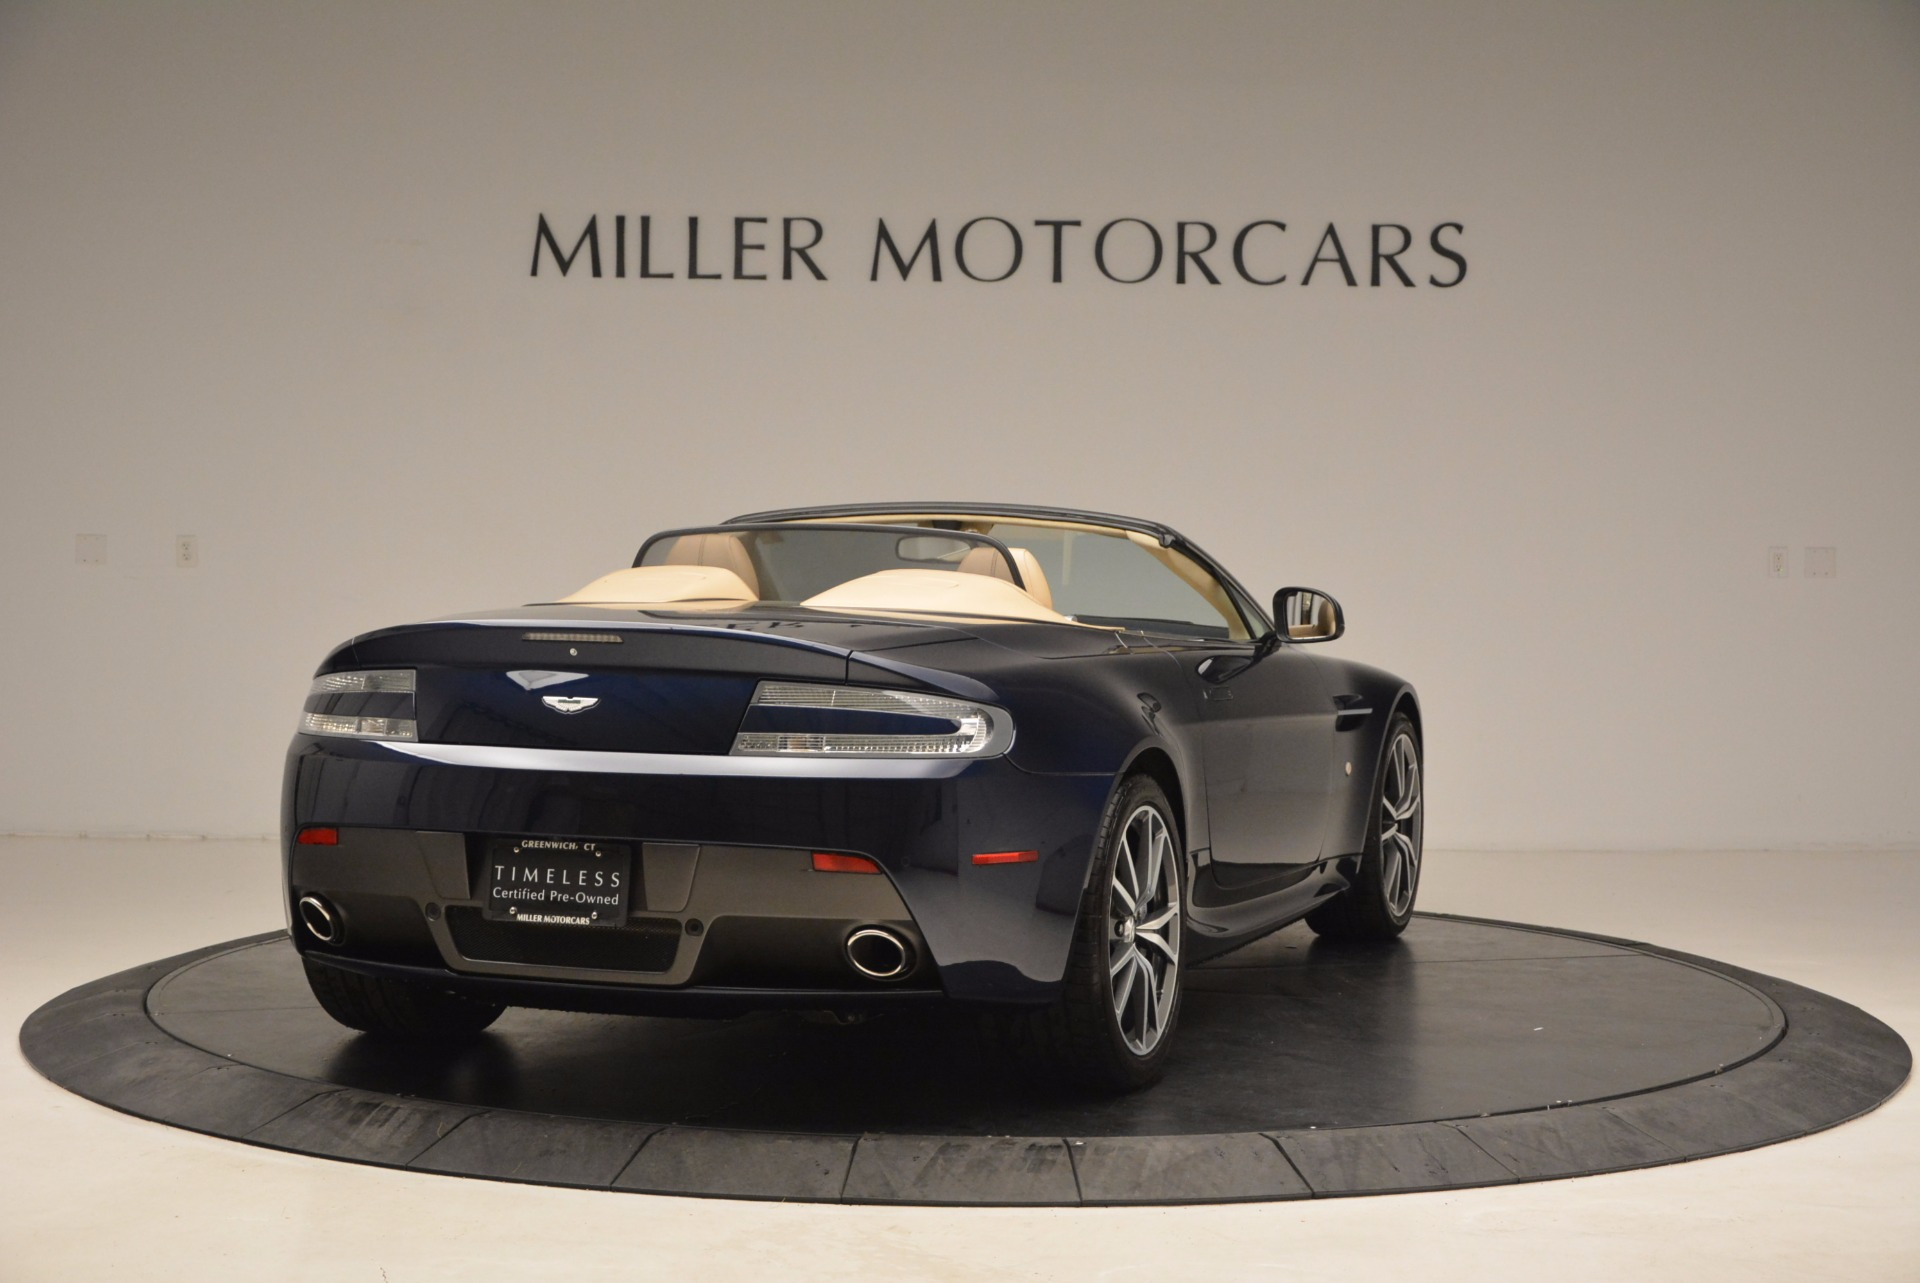 Used 2014 Aston Martin V8 Vantage Roadster For Sale In Greenwich, CT. Alfa Romeo of Greenwich, 7282 1623_p7